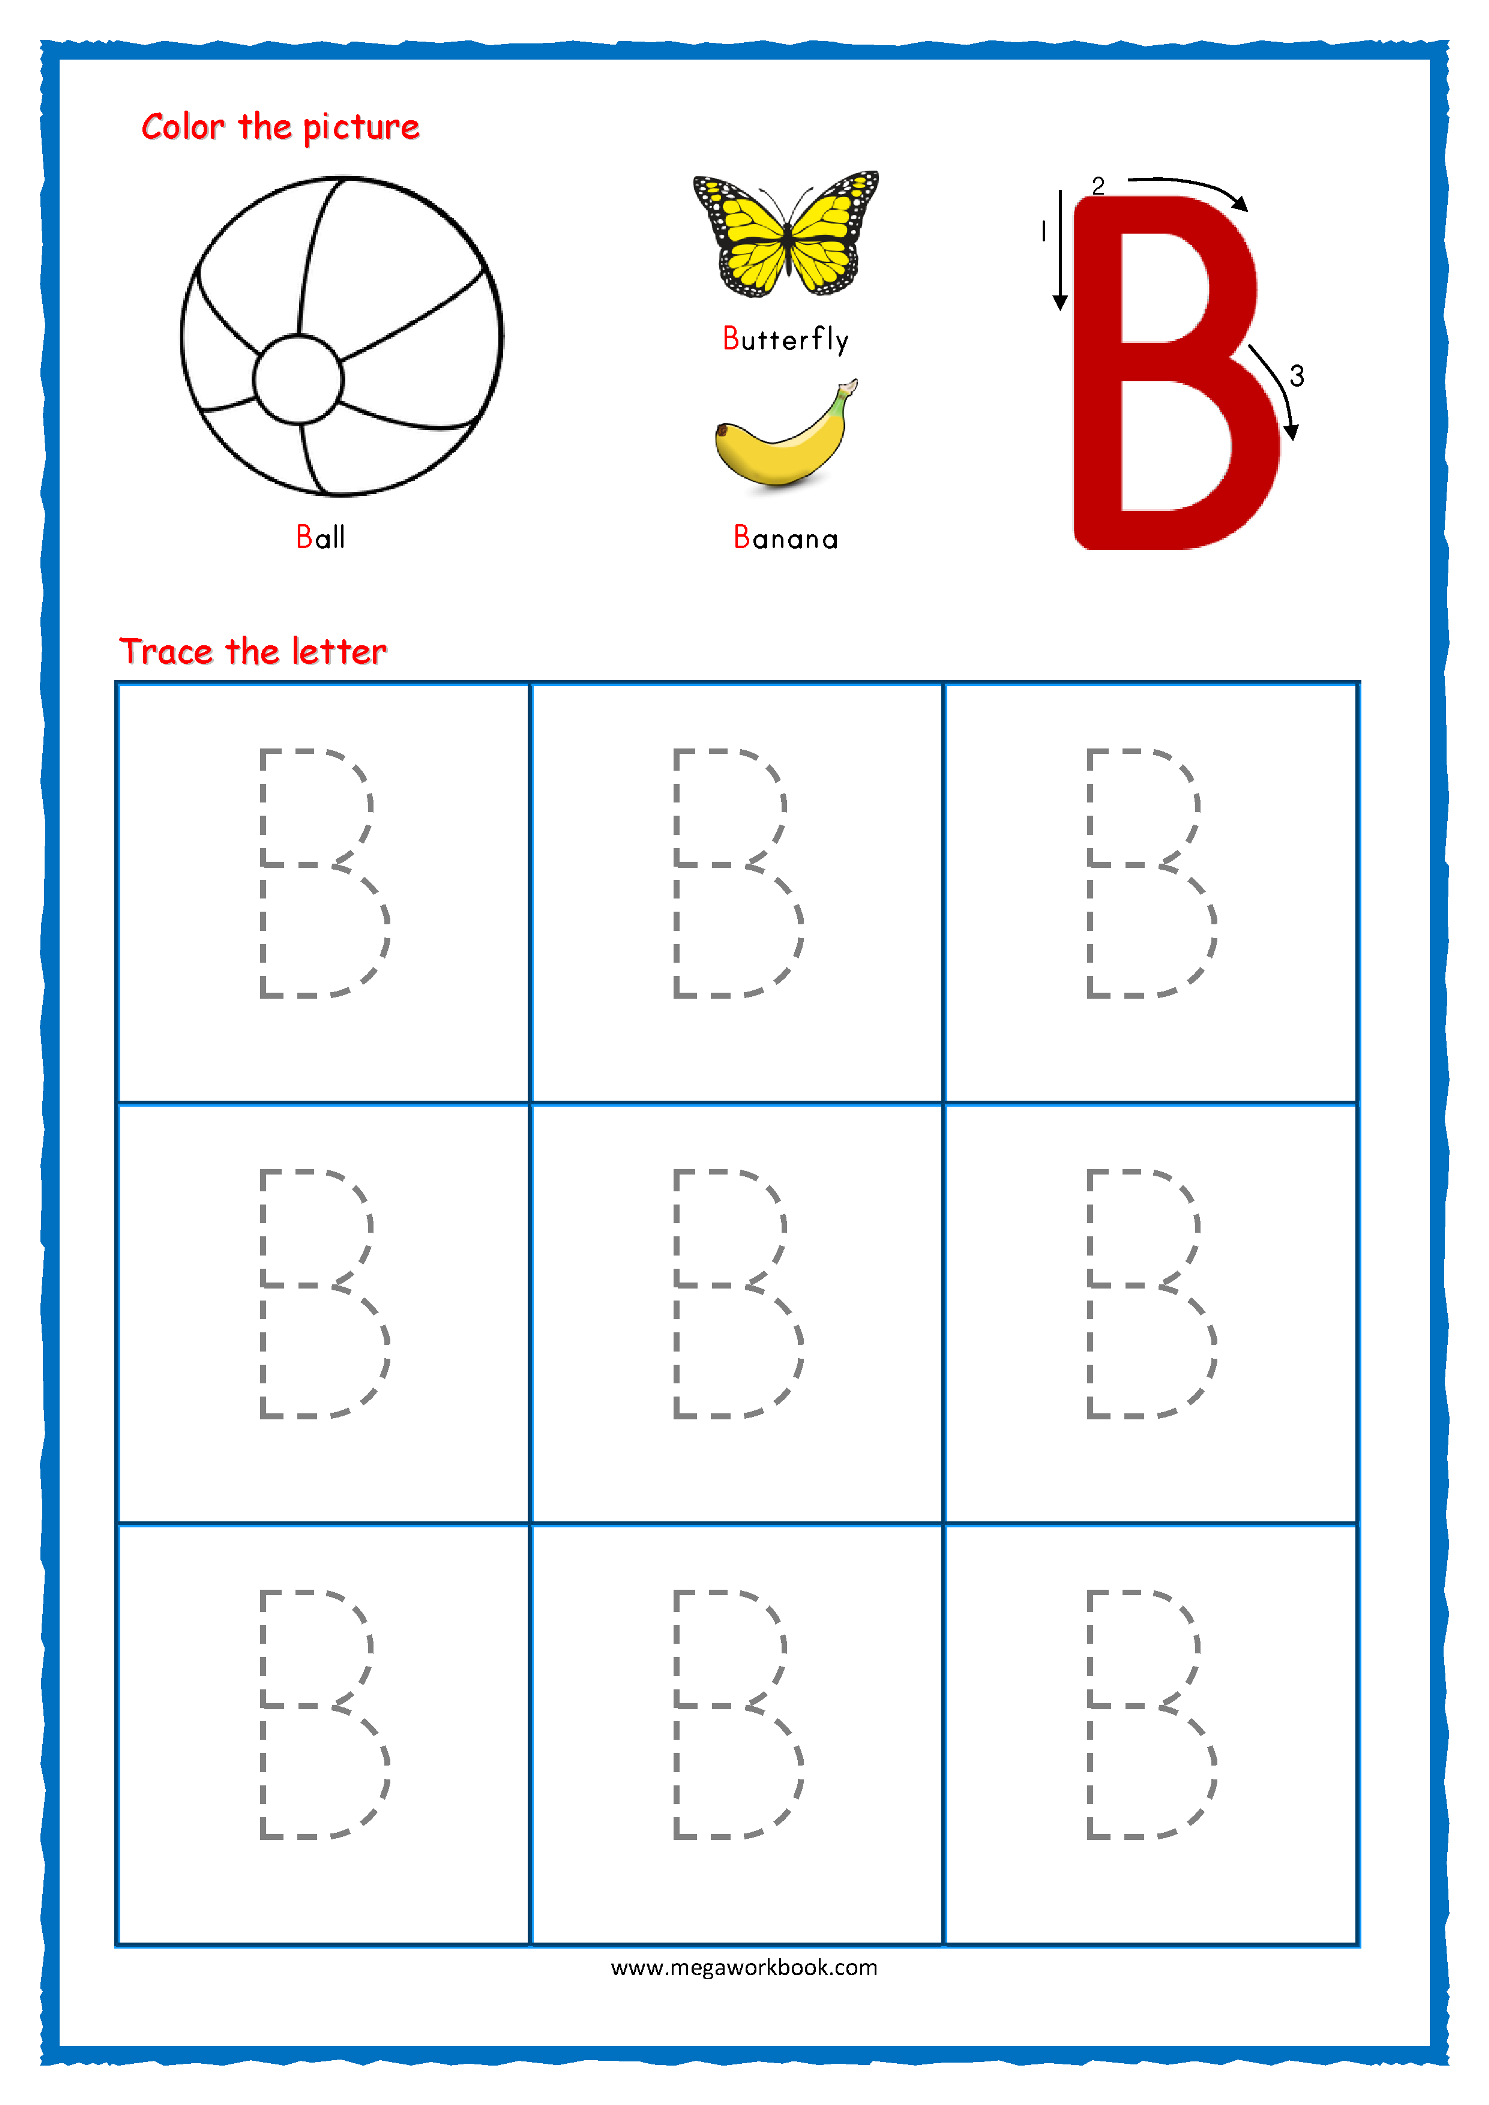 Tracing Letters - Alphabet Tracing - Capital Letters with regard to Alphabet Worksheets 4 Lines